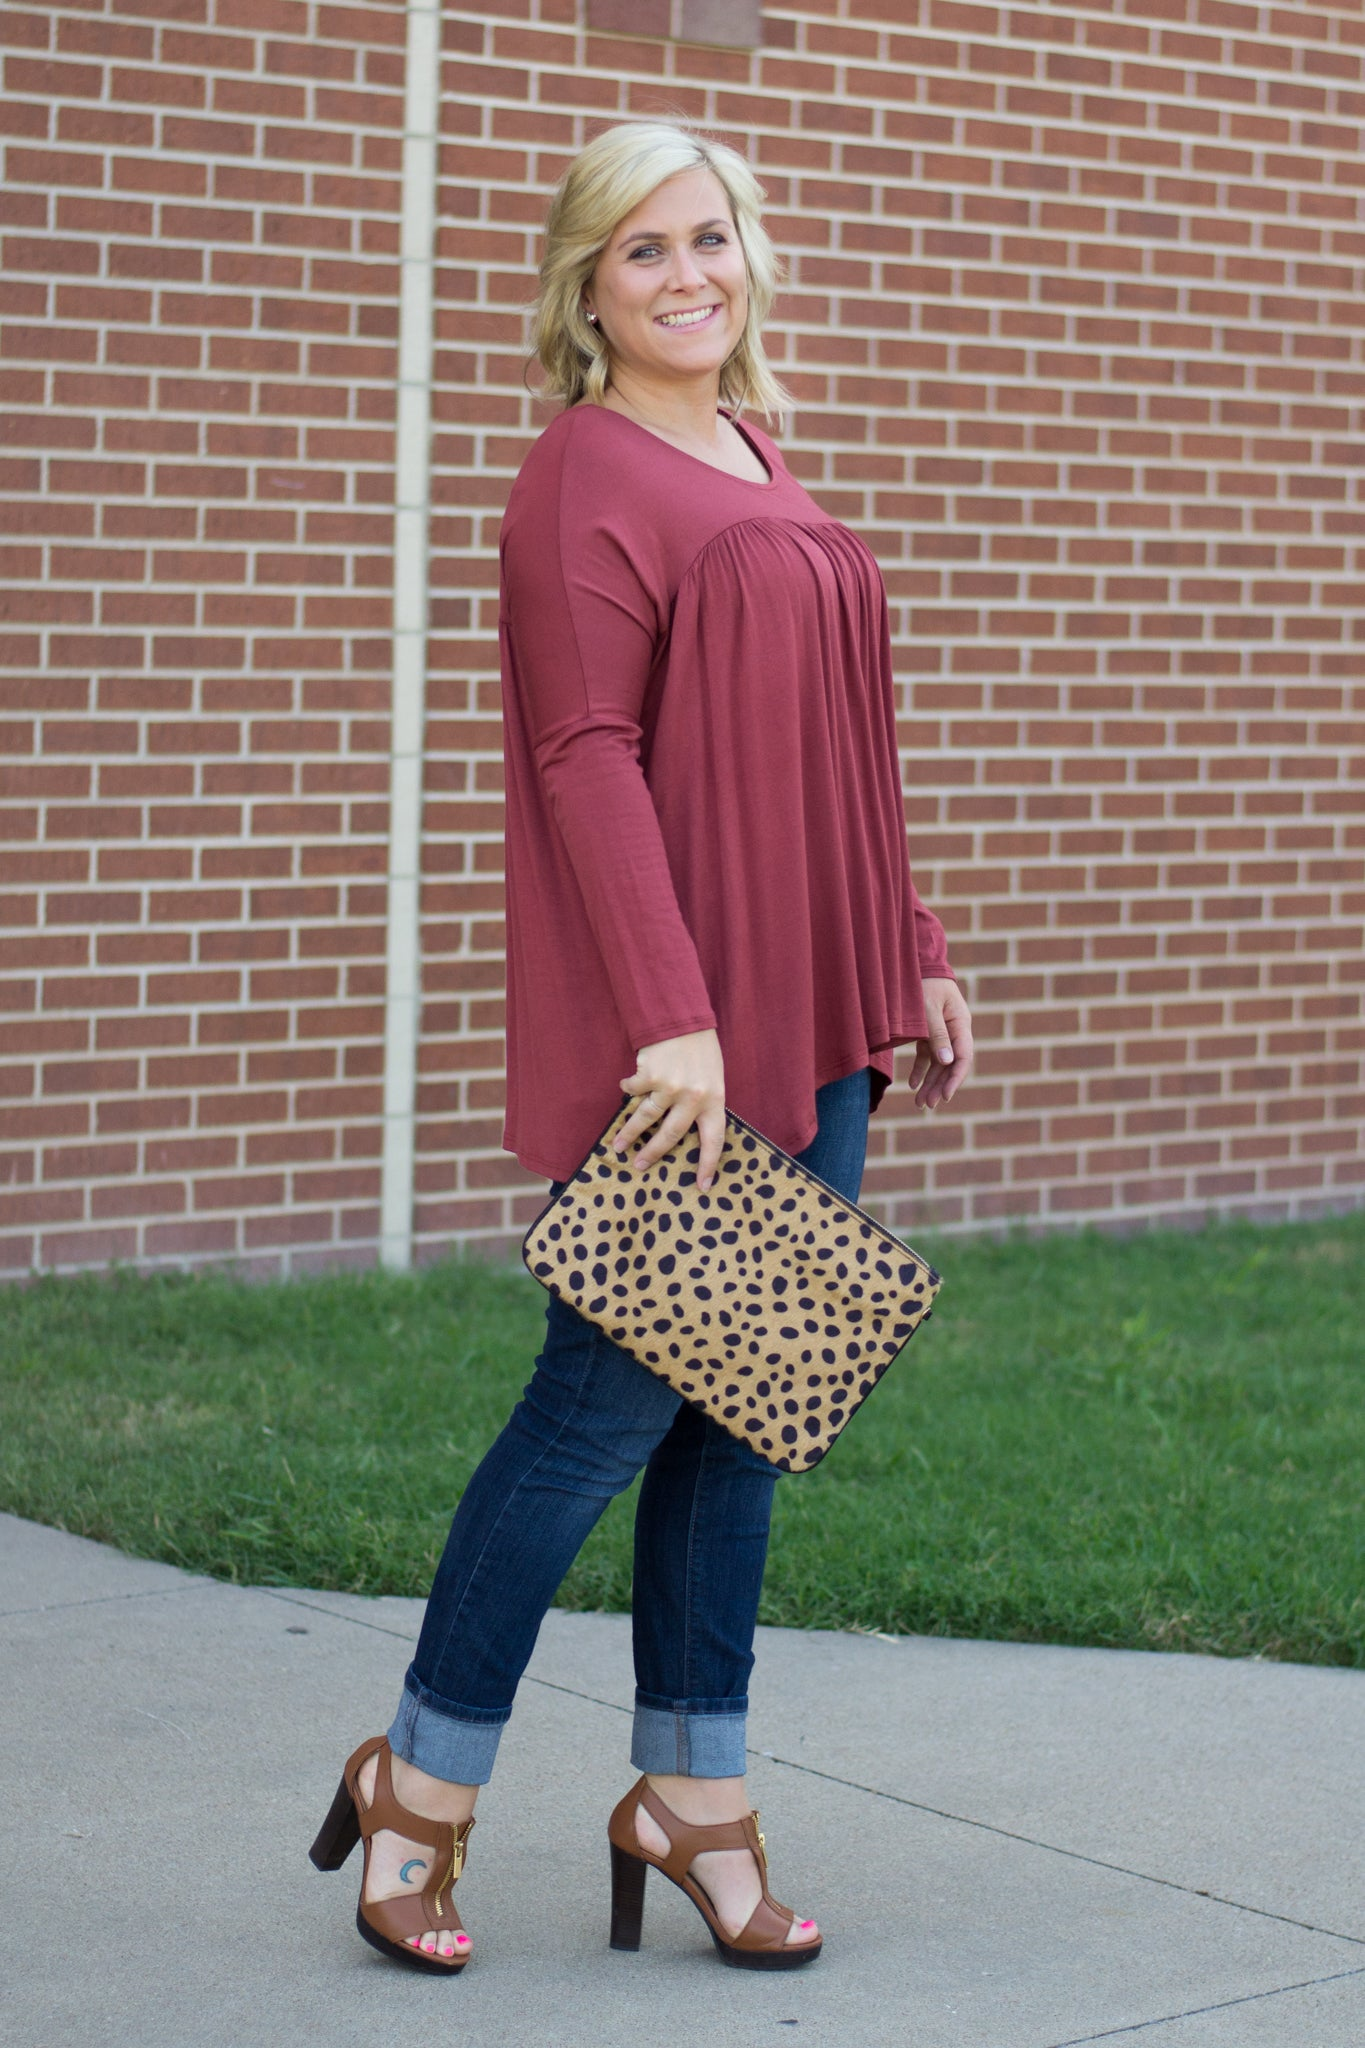 Pink Babydoll Top paired with Skinny Jeans and Leopard Clutch